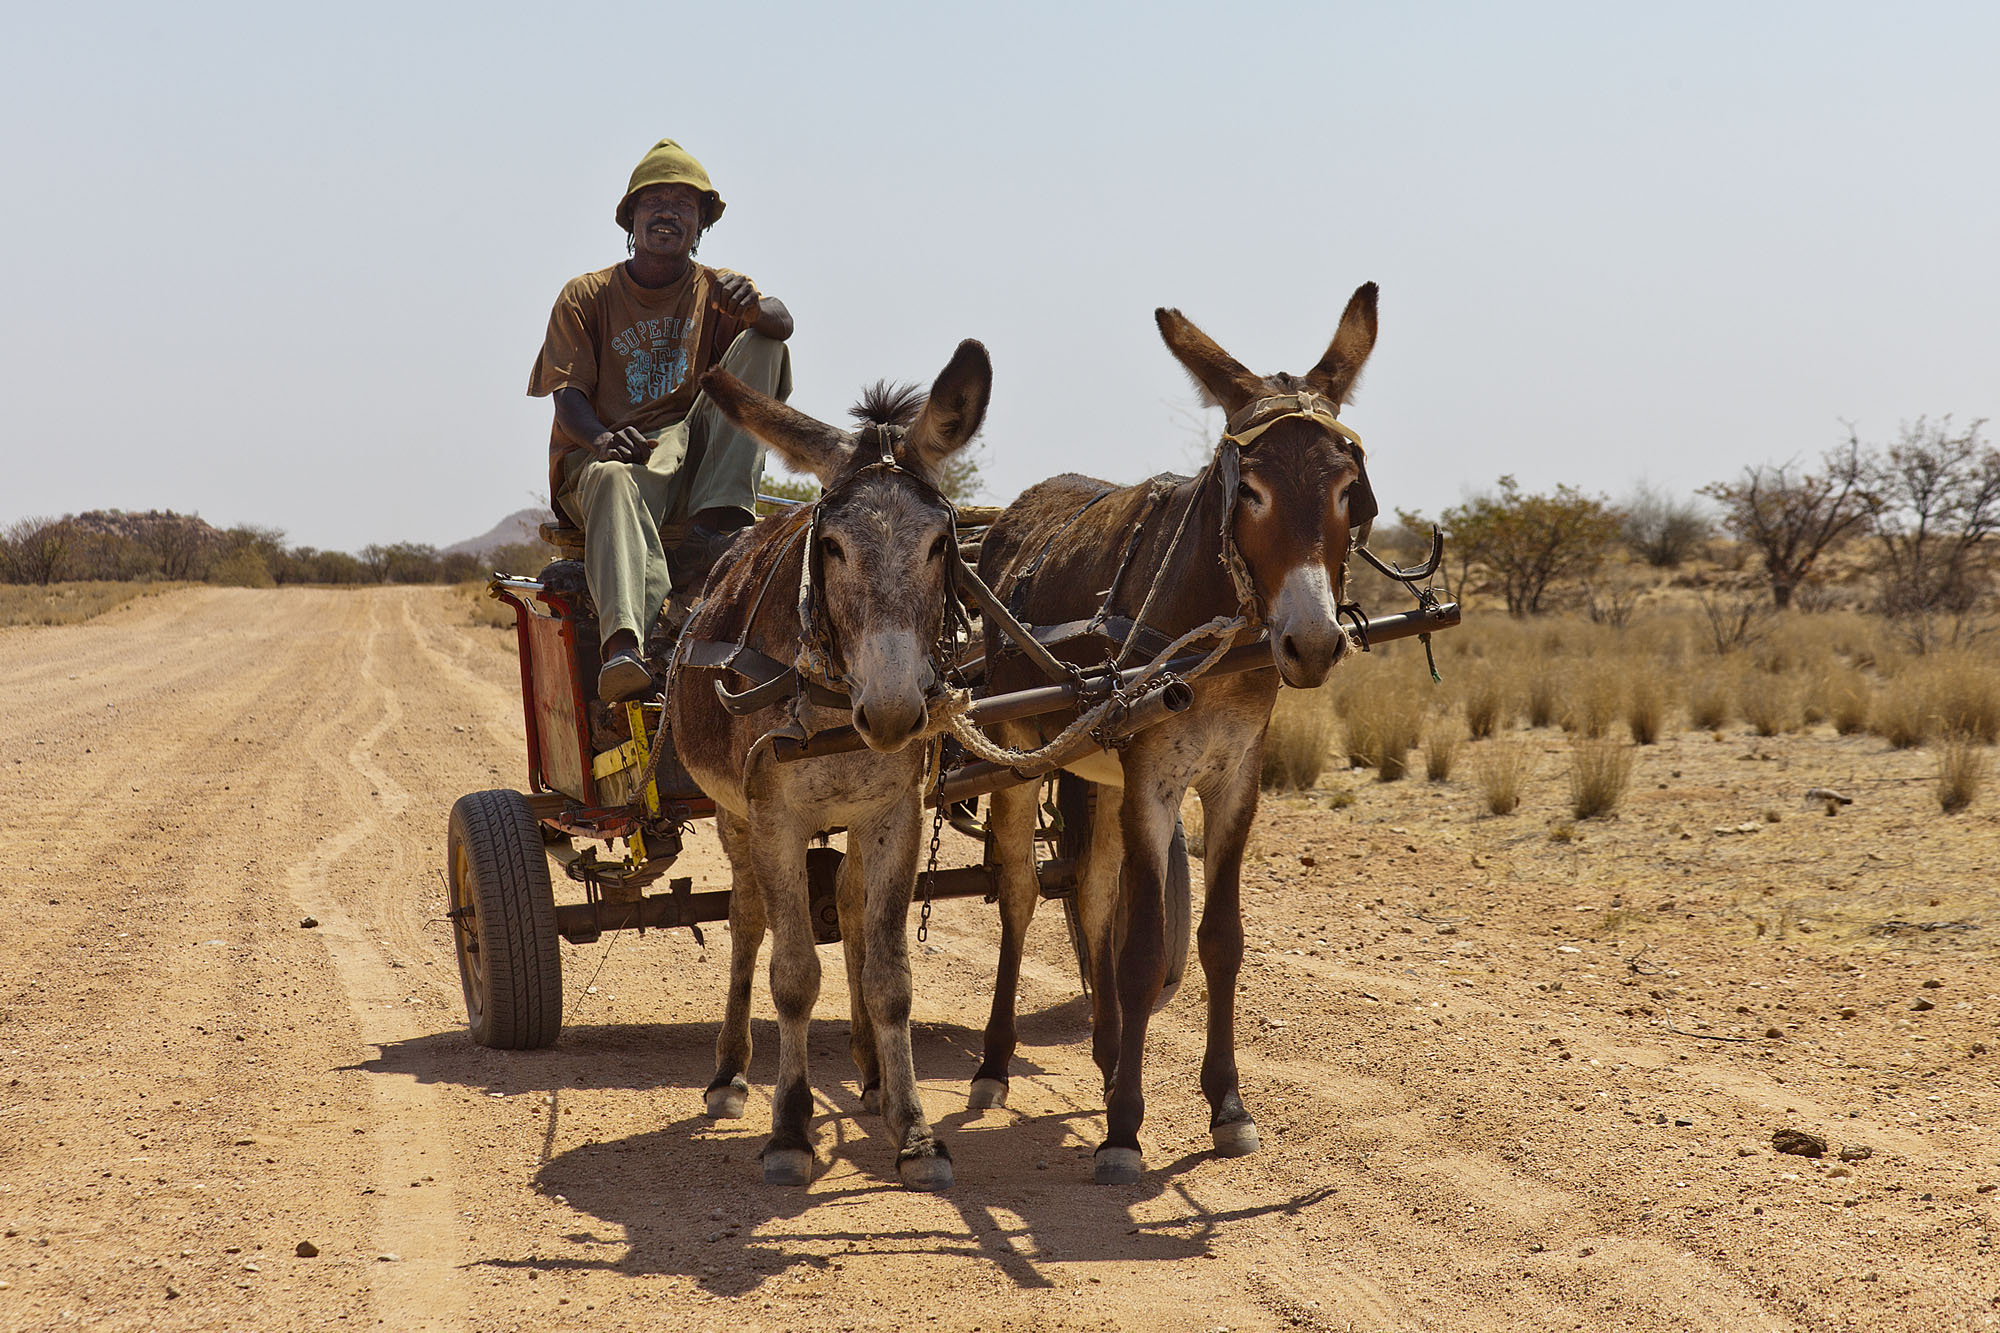 Mike and his donkey cart